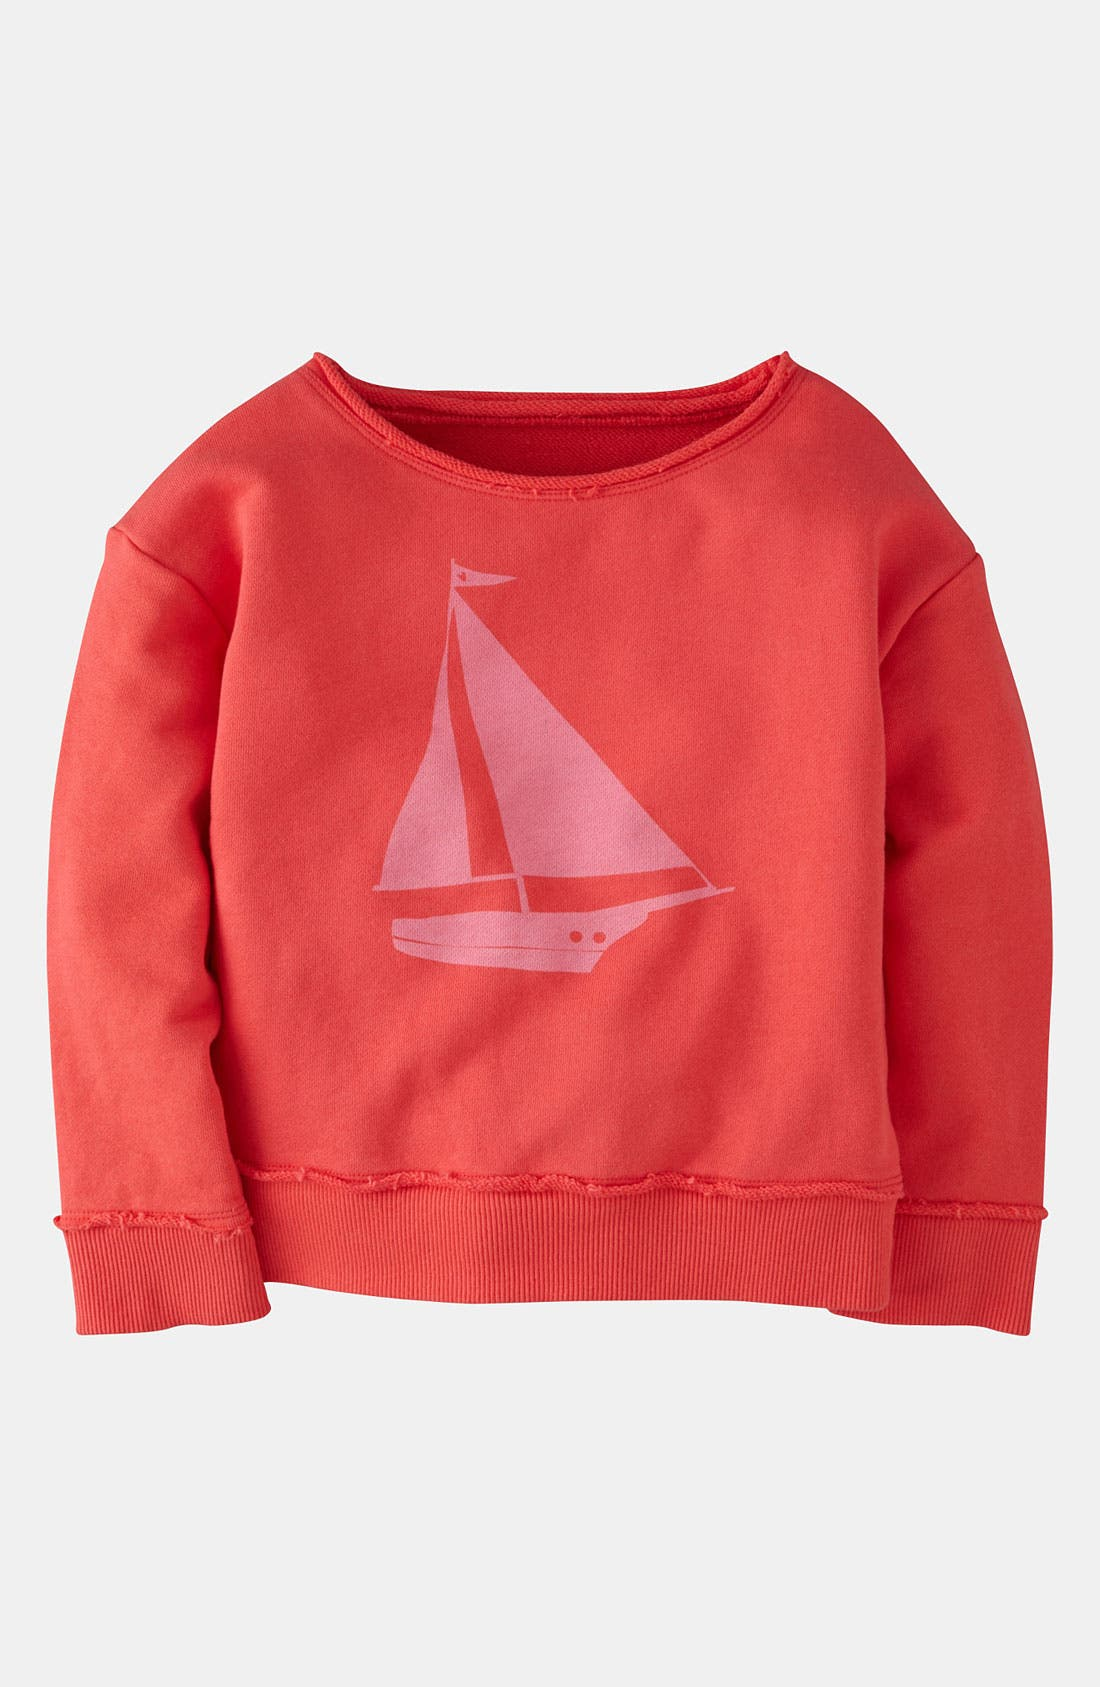 Alternate Image 1 Selected - Mini Boden 'Washed Logo' Sweatshirt (Little Girls & Big Girls)